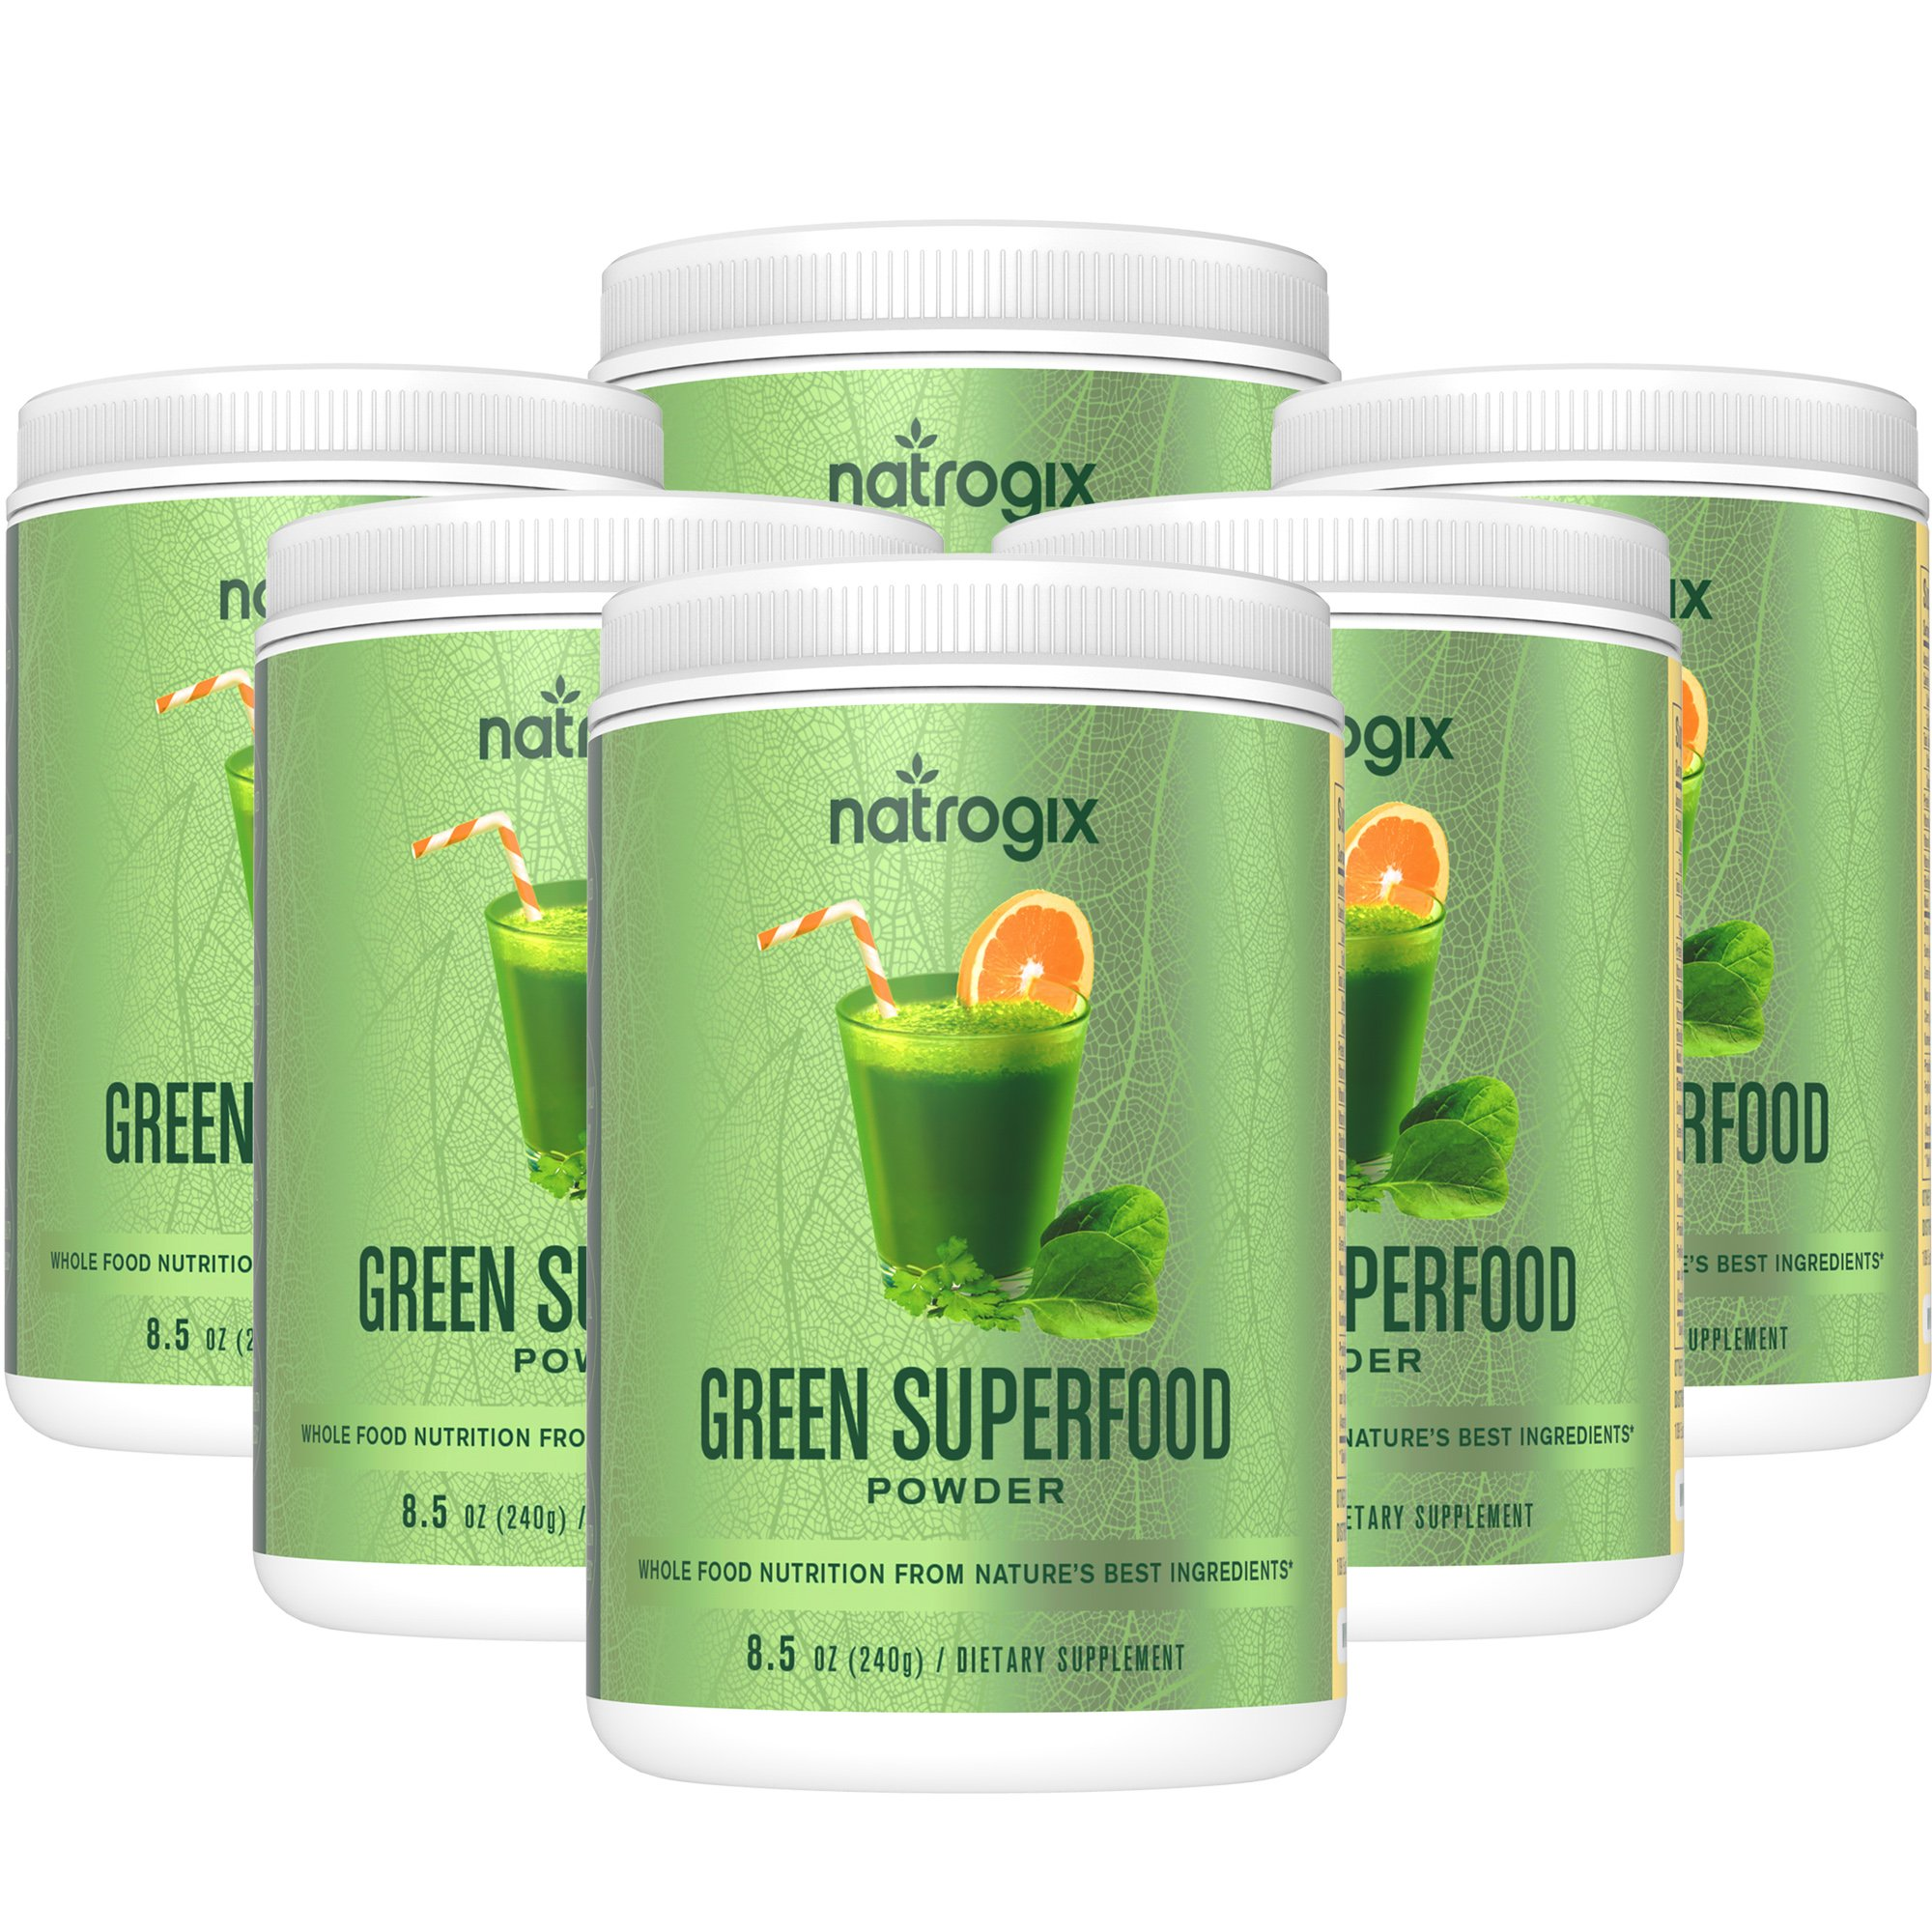 Natrogix Green Superfood Dietary Supplement - Gluten Free, Vegan Whole Food Nutrition & Powerful Antioxidant and Fiber Powder. Rich in Vitamins, Minerals and Probiotics (8.5Oz) * (5 Bottles).